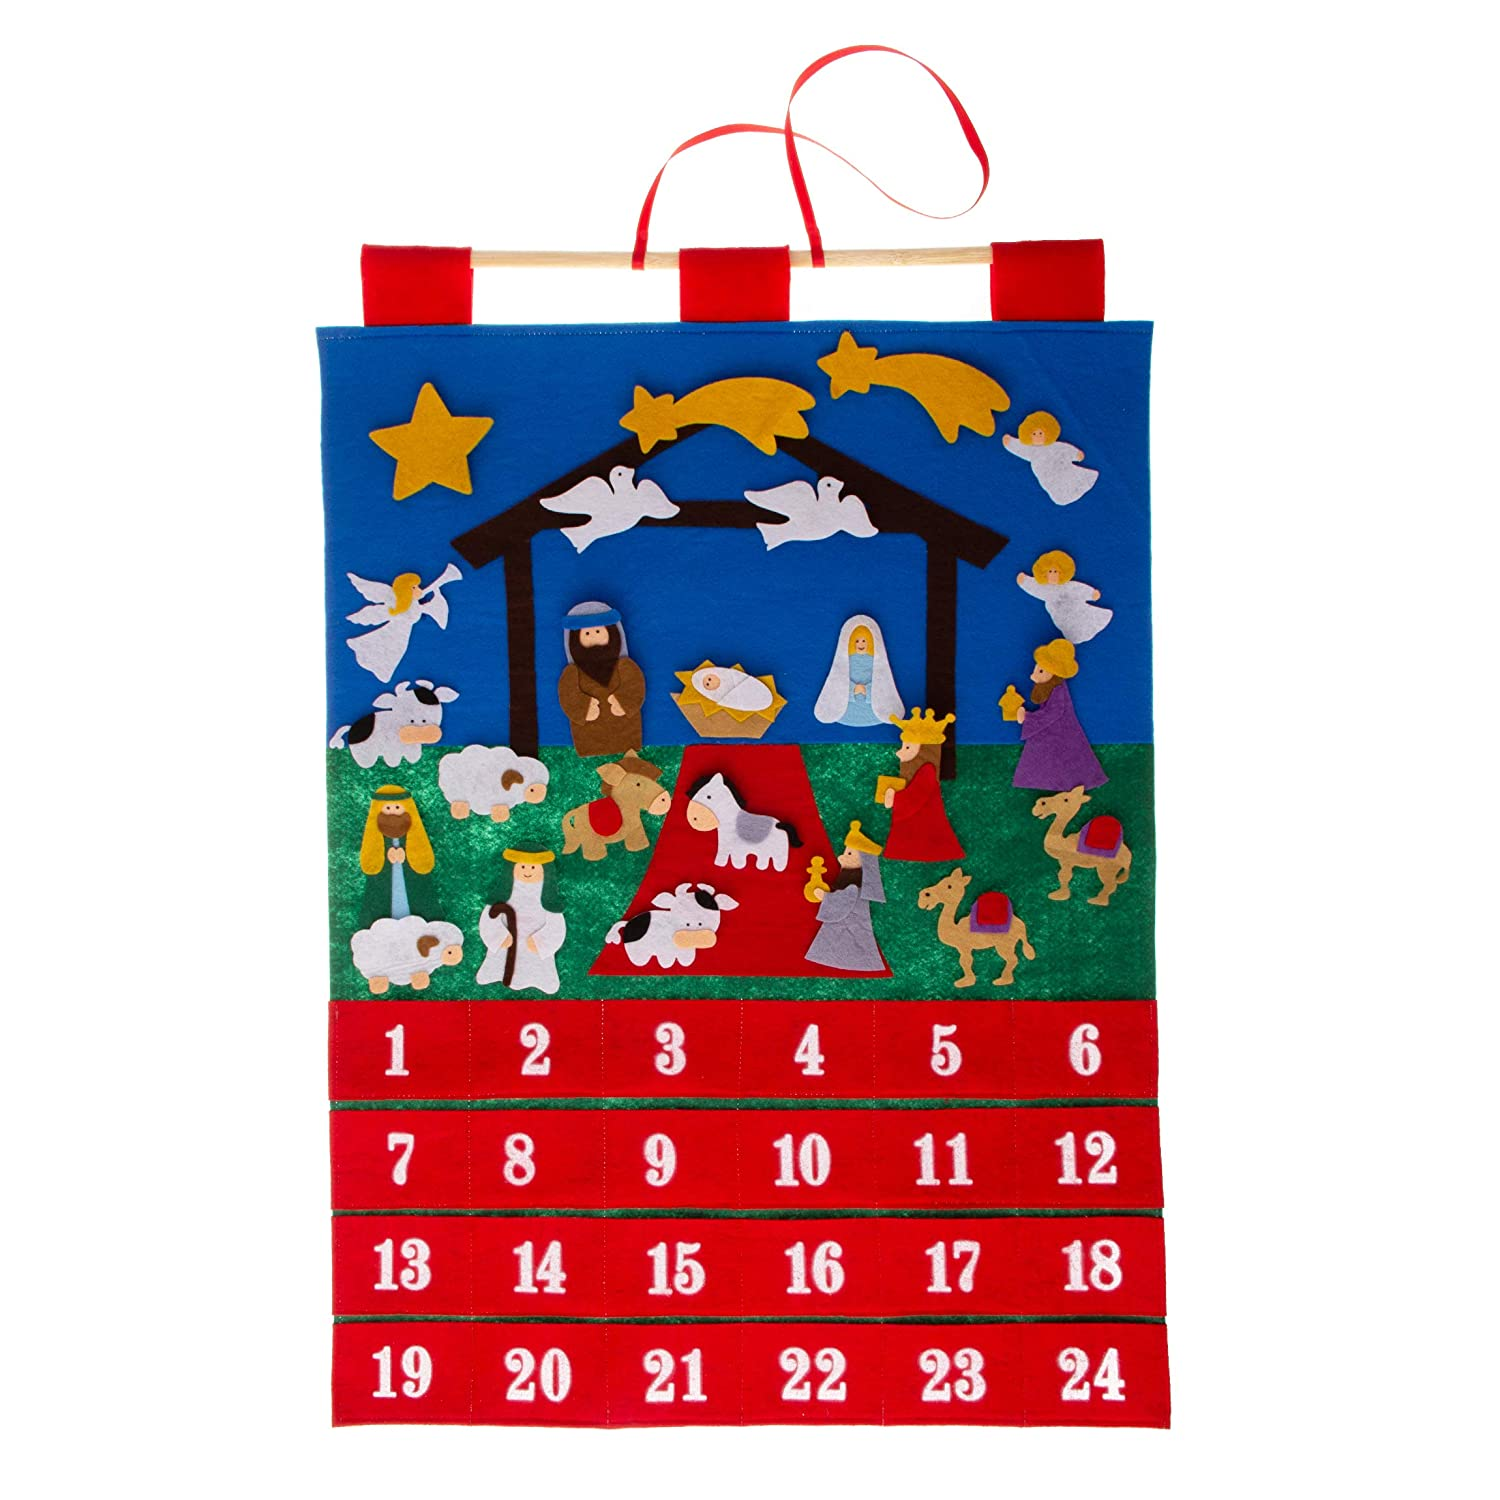 Good Ruby Advent Calendar for Kids, Nativity Christmas Calendars, Velcro and Felt Hanging Wall Calendar (Nativity)